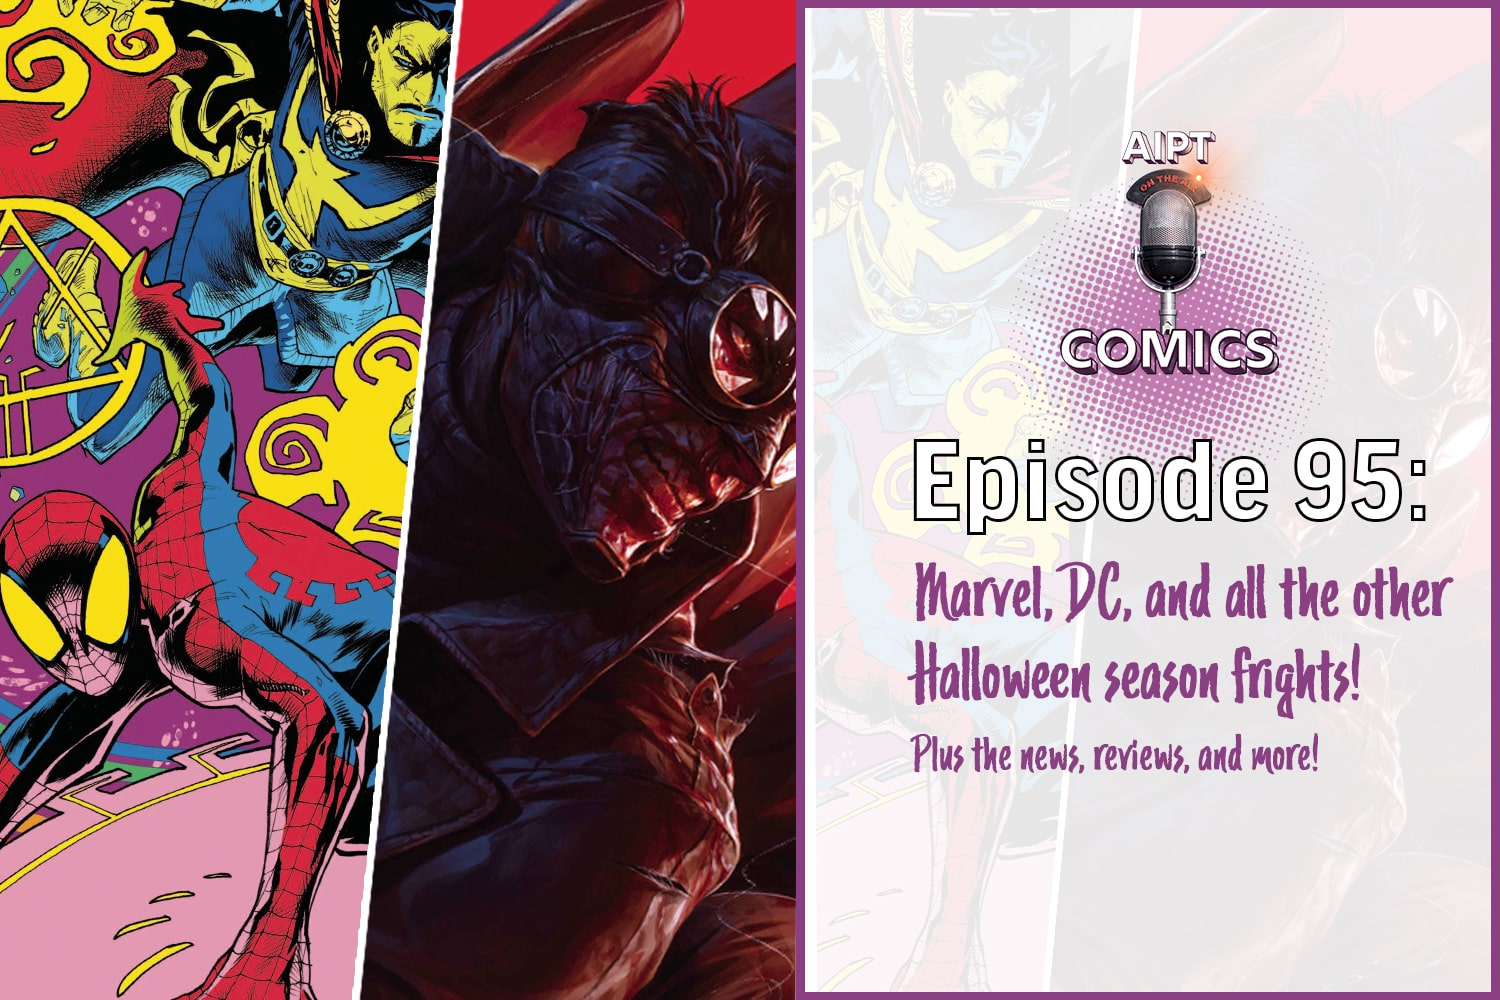 AIPT Comics Podcast Episode 95: Marvel, DC, and all the other Halloween season frights!